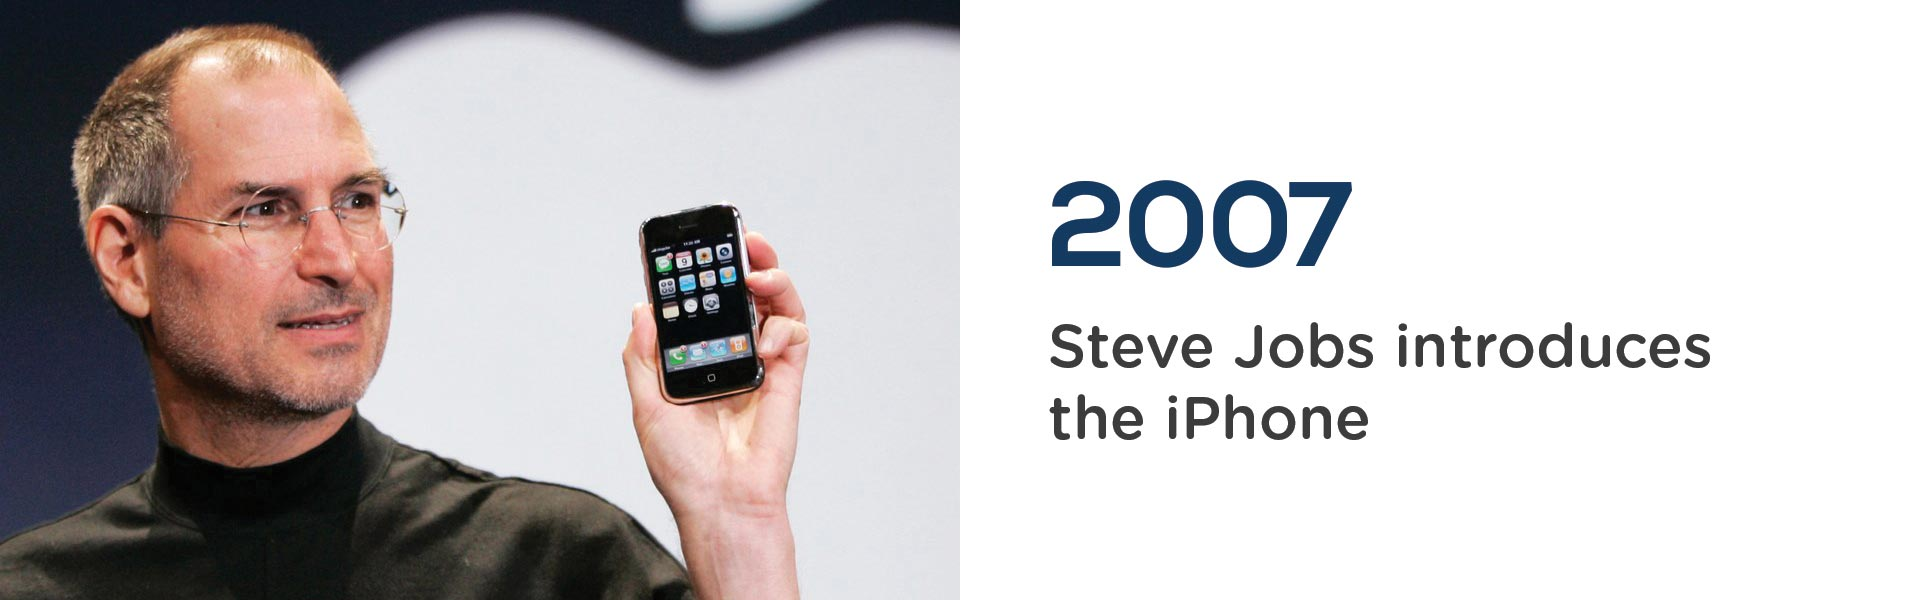 Steve Jobs introdces the iPhone in 2007.Wrigley Claydon Solicitors, Trusted for 200 years